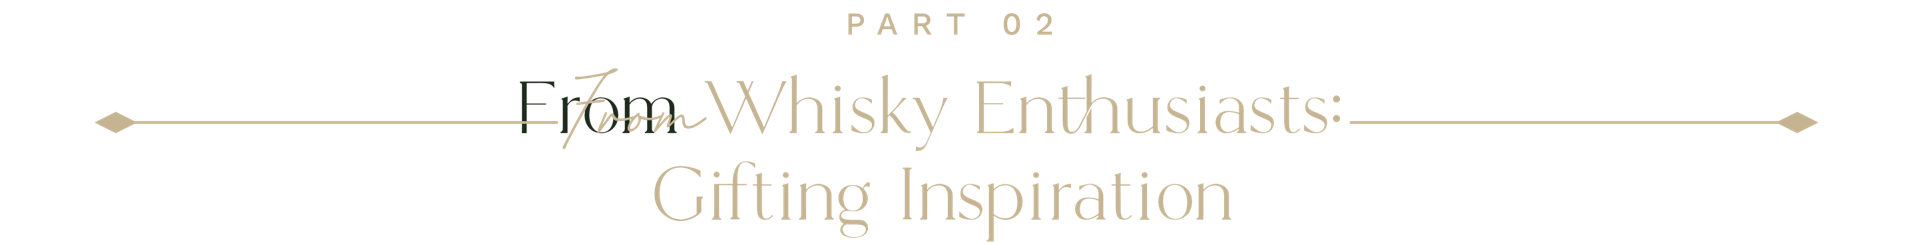 Part 02:  From Whisky Enthusiasts: Gifting Inspiration